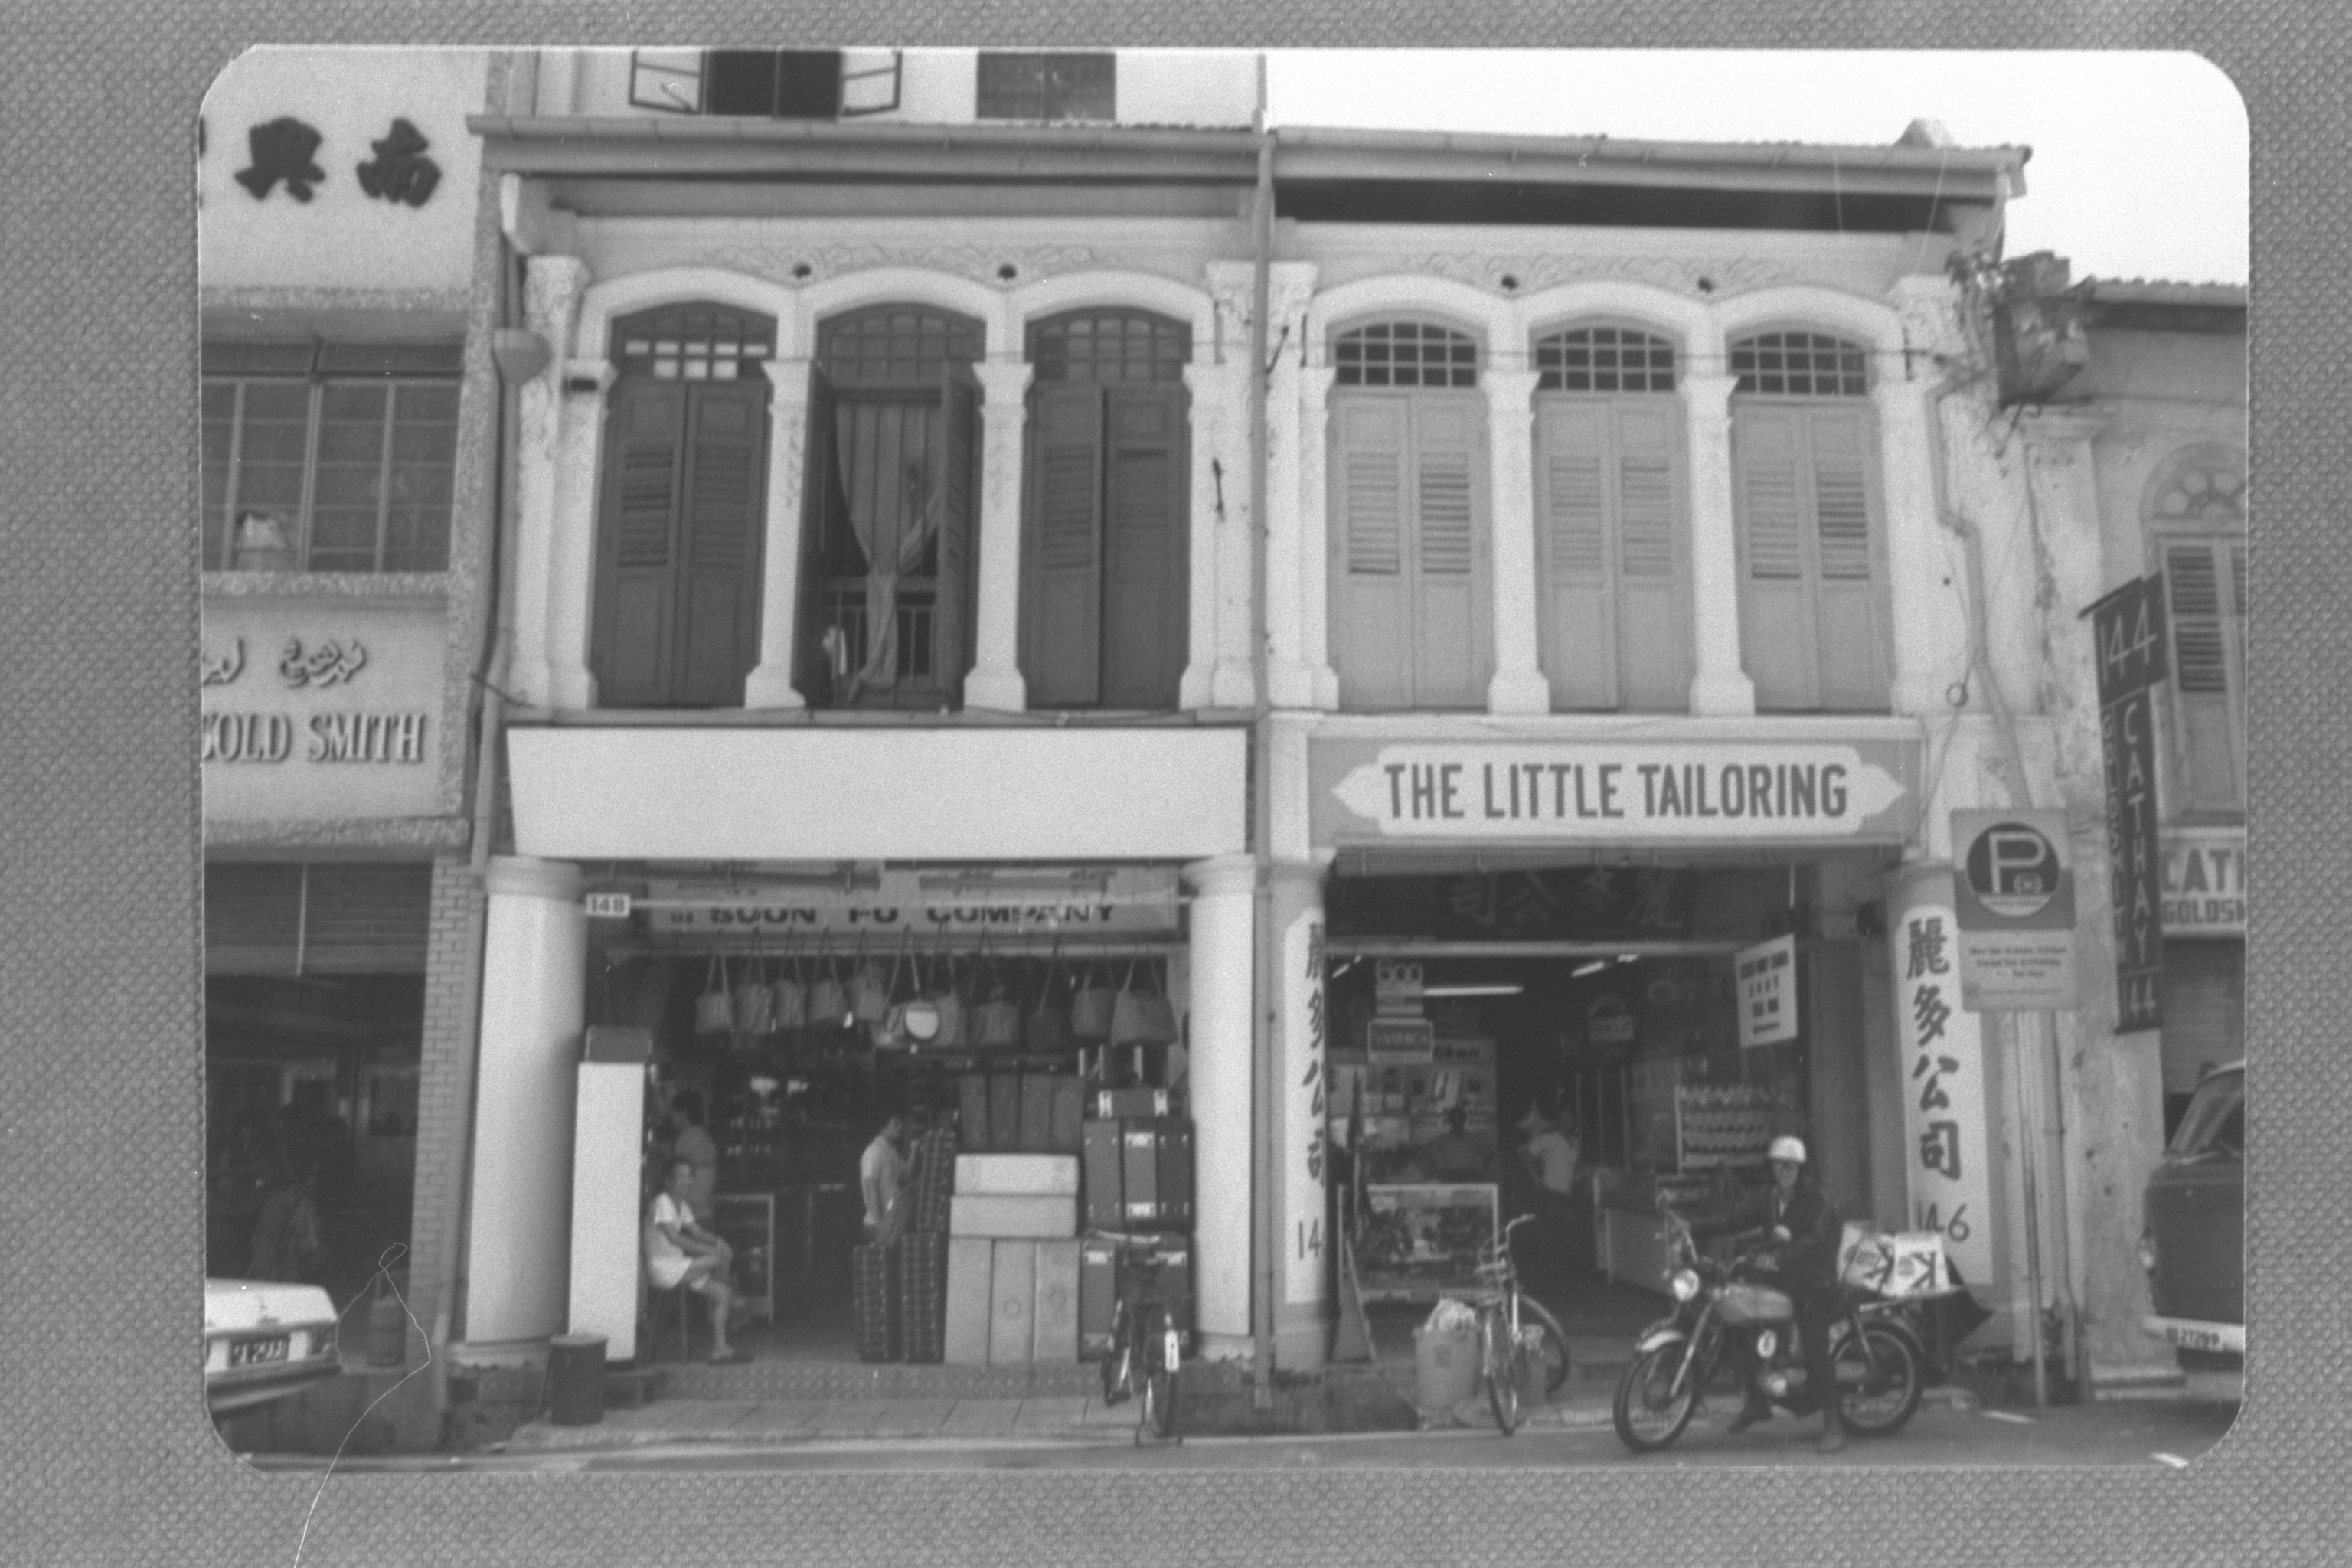 Tailoring shop on Arab Street, 1985. URA Collection, courtesy of National Archives of Singapore